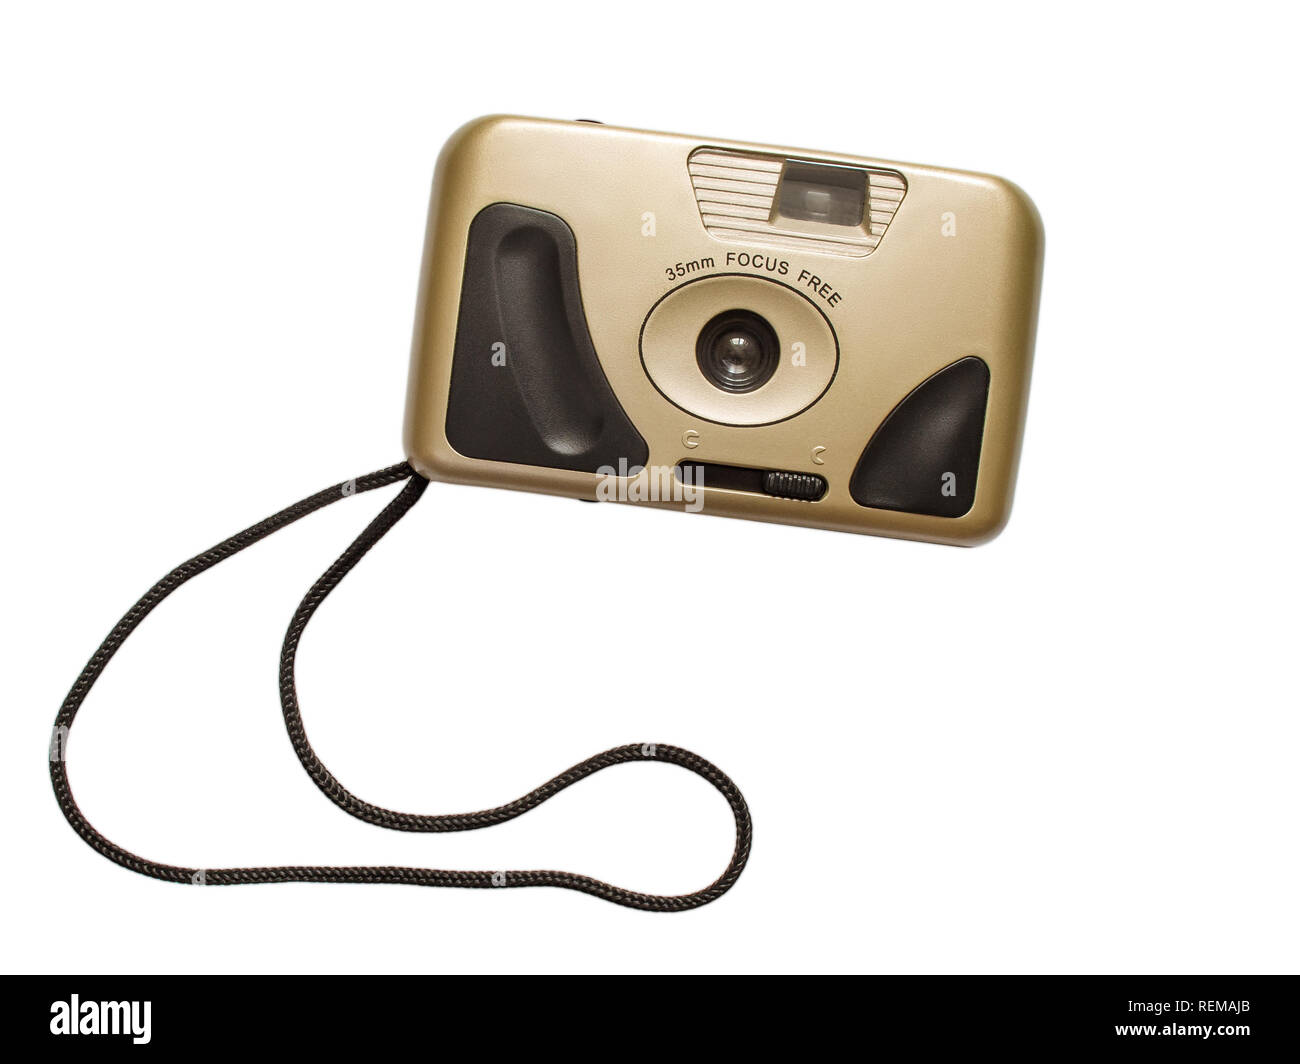 Point-and-shoot 90s retro style camera isolated on white background (front view) - Stock Image